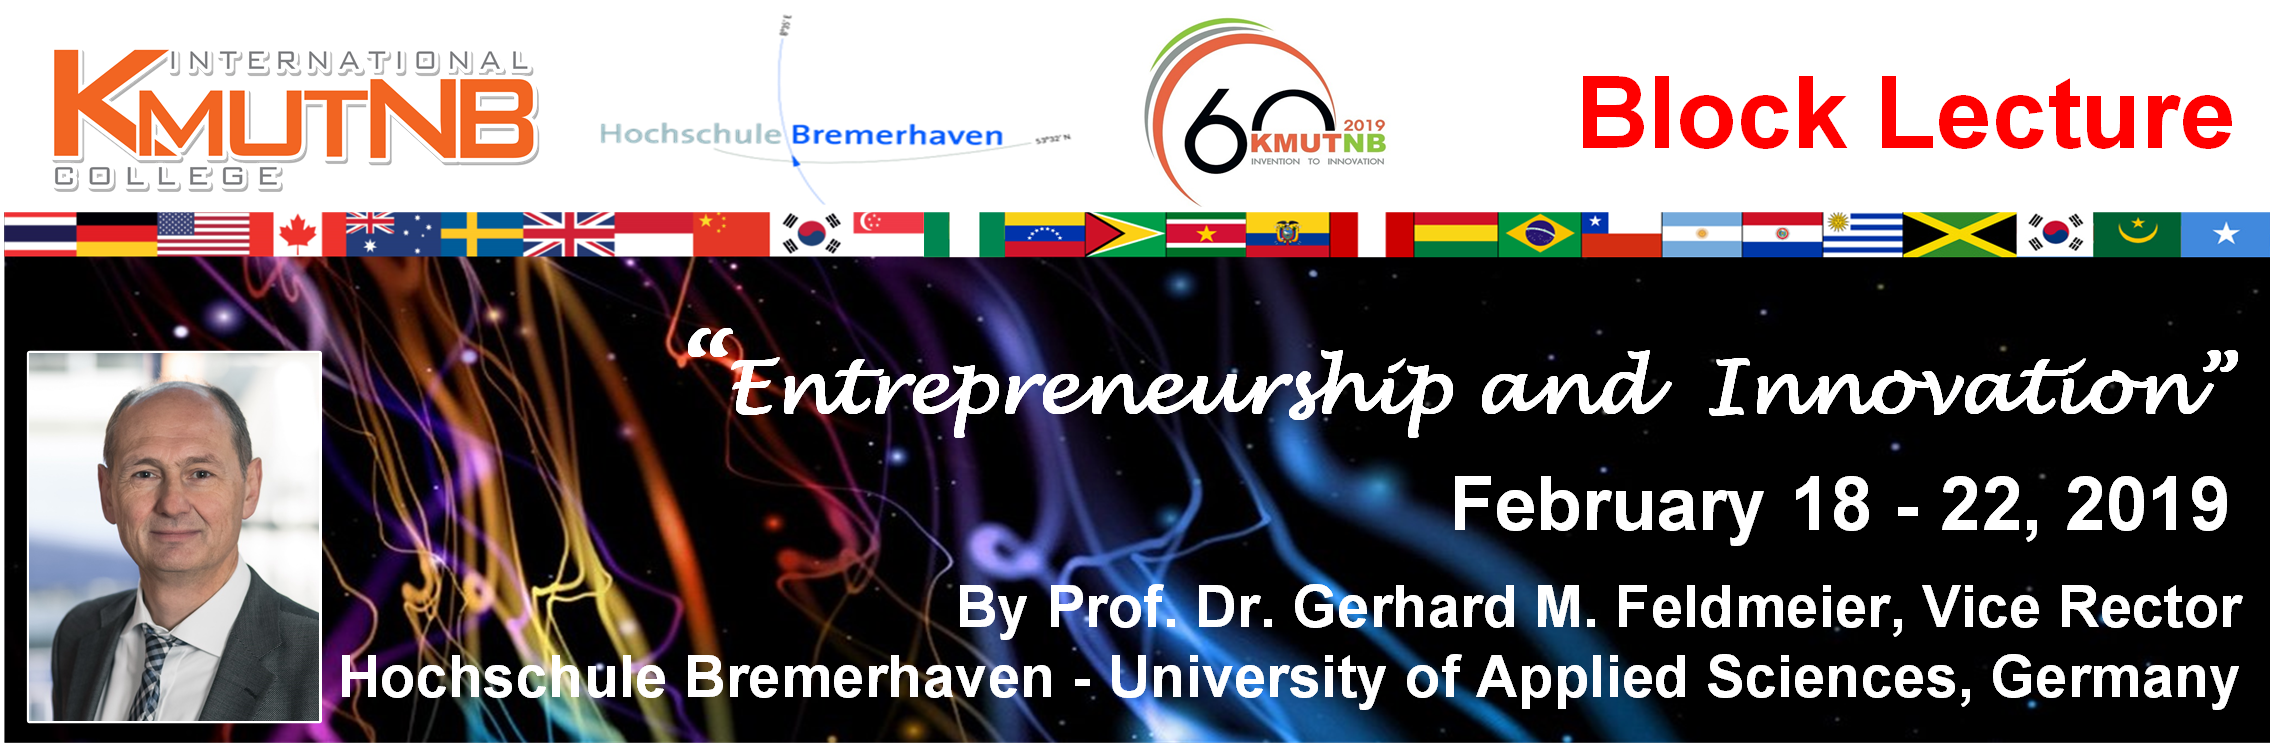 Block Lecture 2019: Entrepreneurship and Innovation